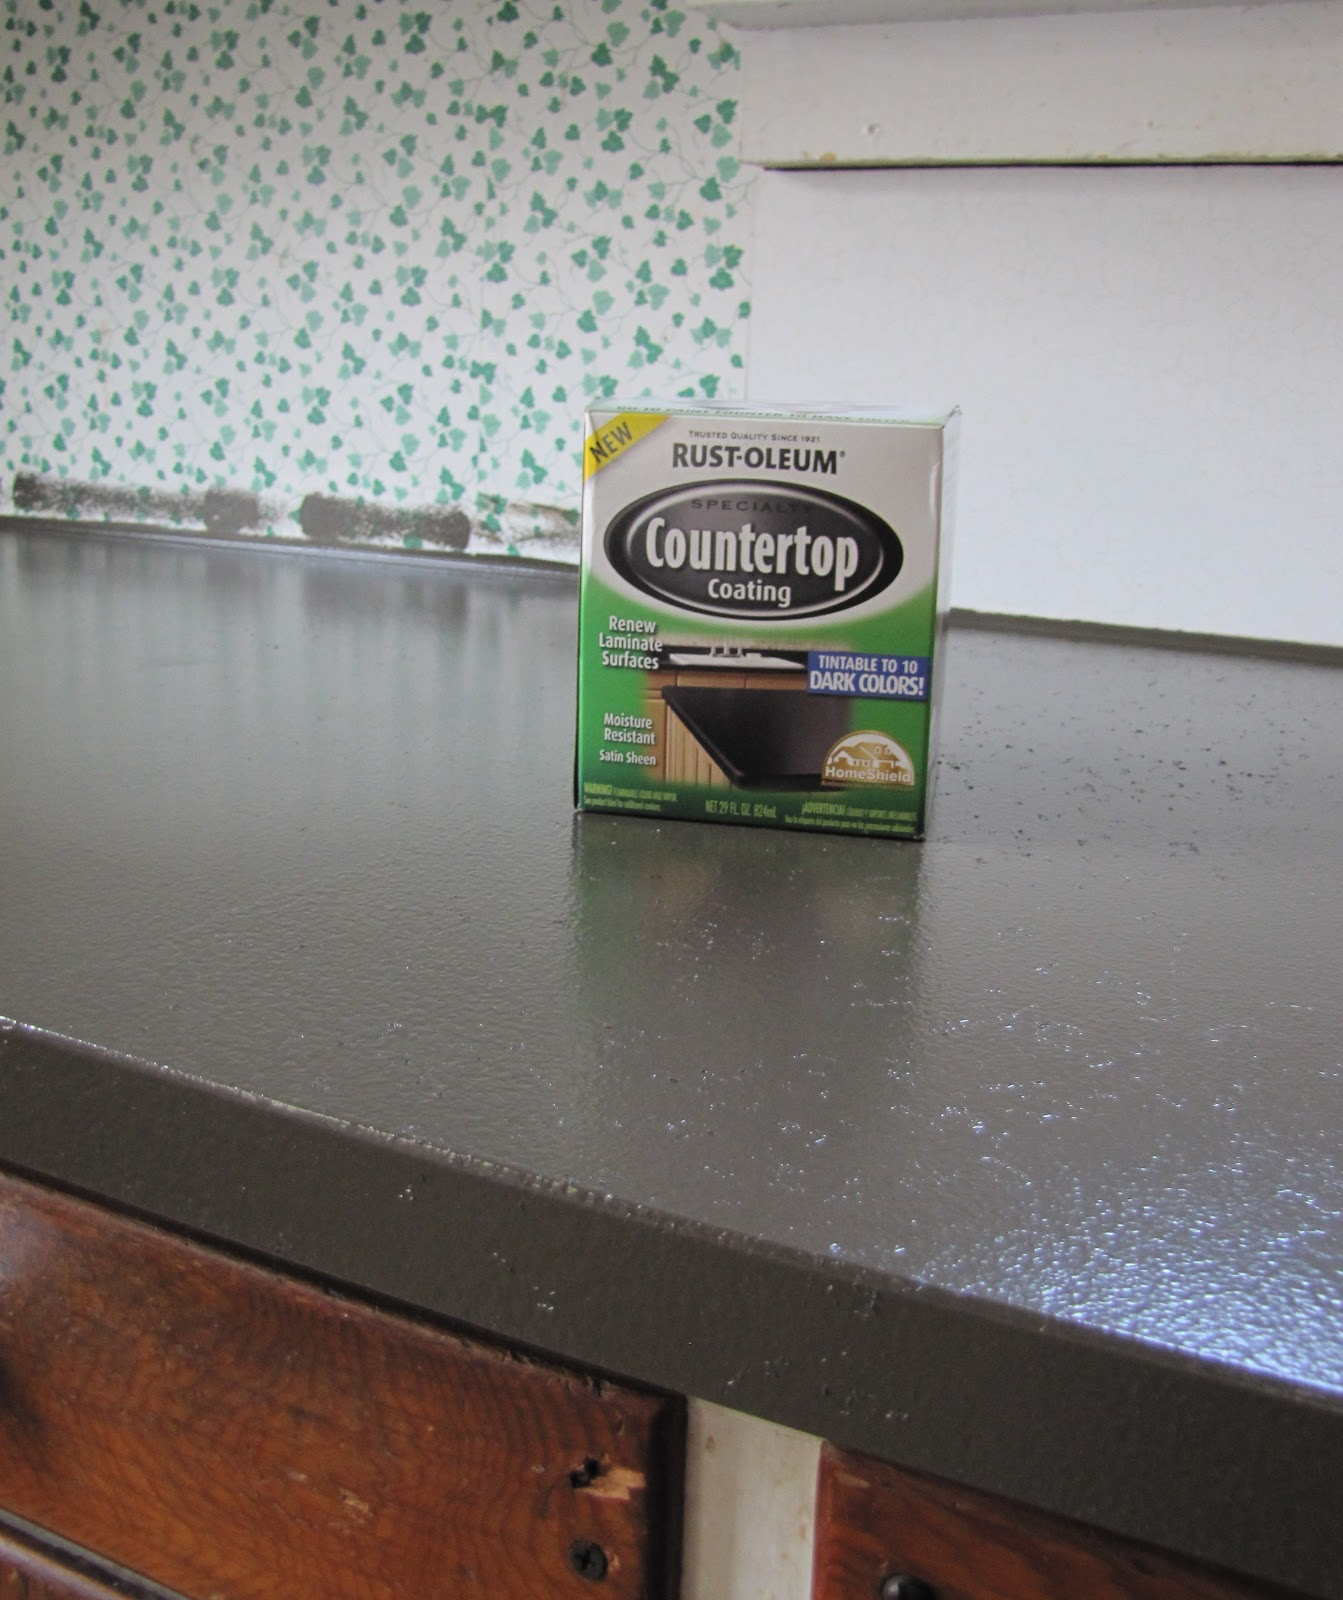 Rustoleum Countertop Paint Directions : Transformations: Another DIY option Rust-Oleums Countertop Coating ...